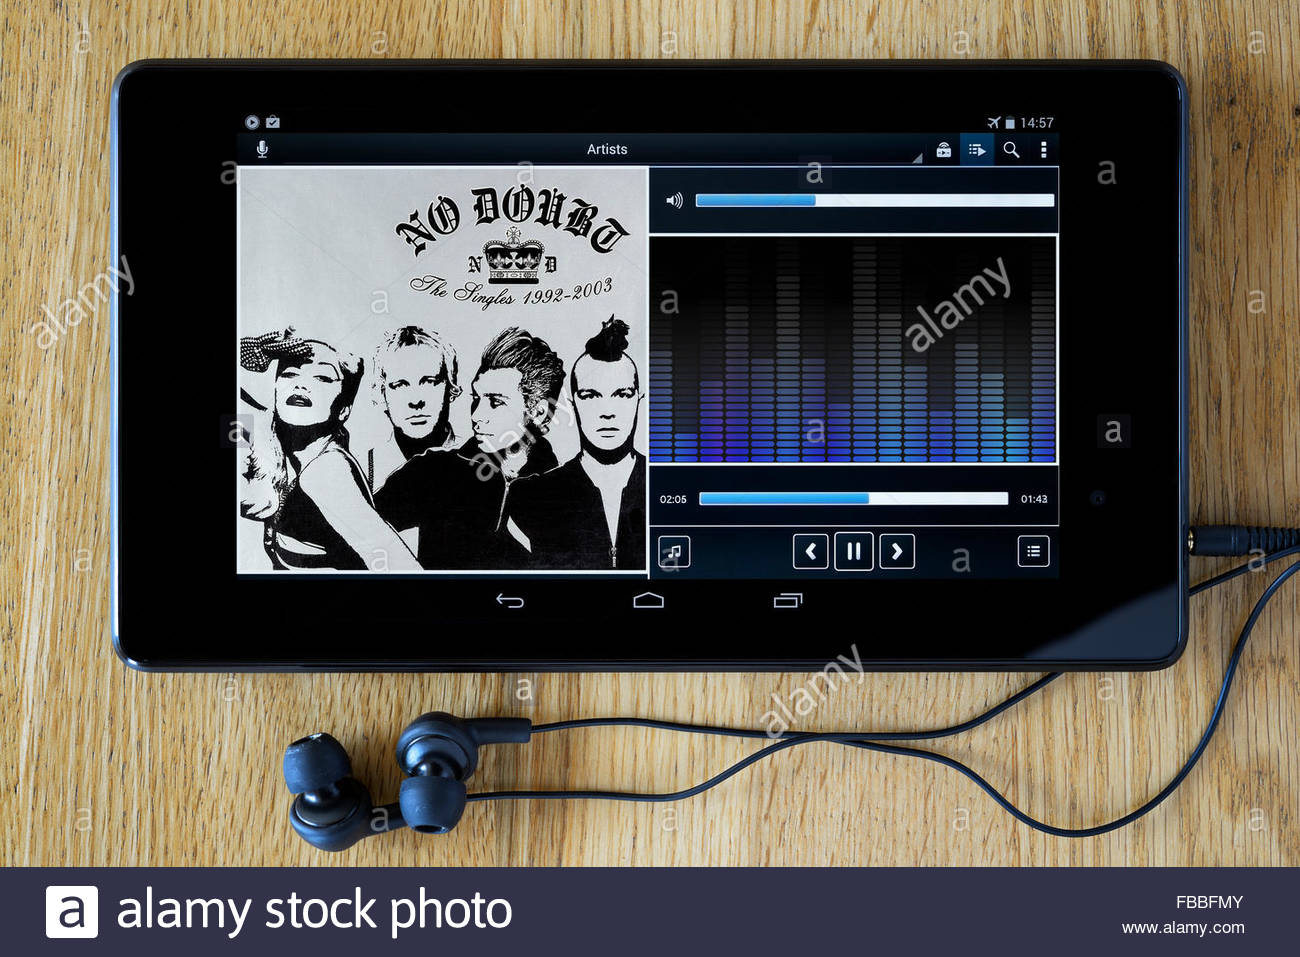 No Doubt 2003 Singles compilation album, MP3 album art on PC tablet, England - Stock Image